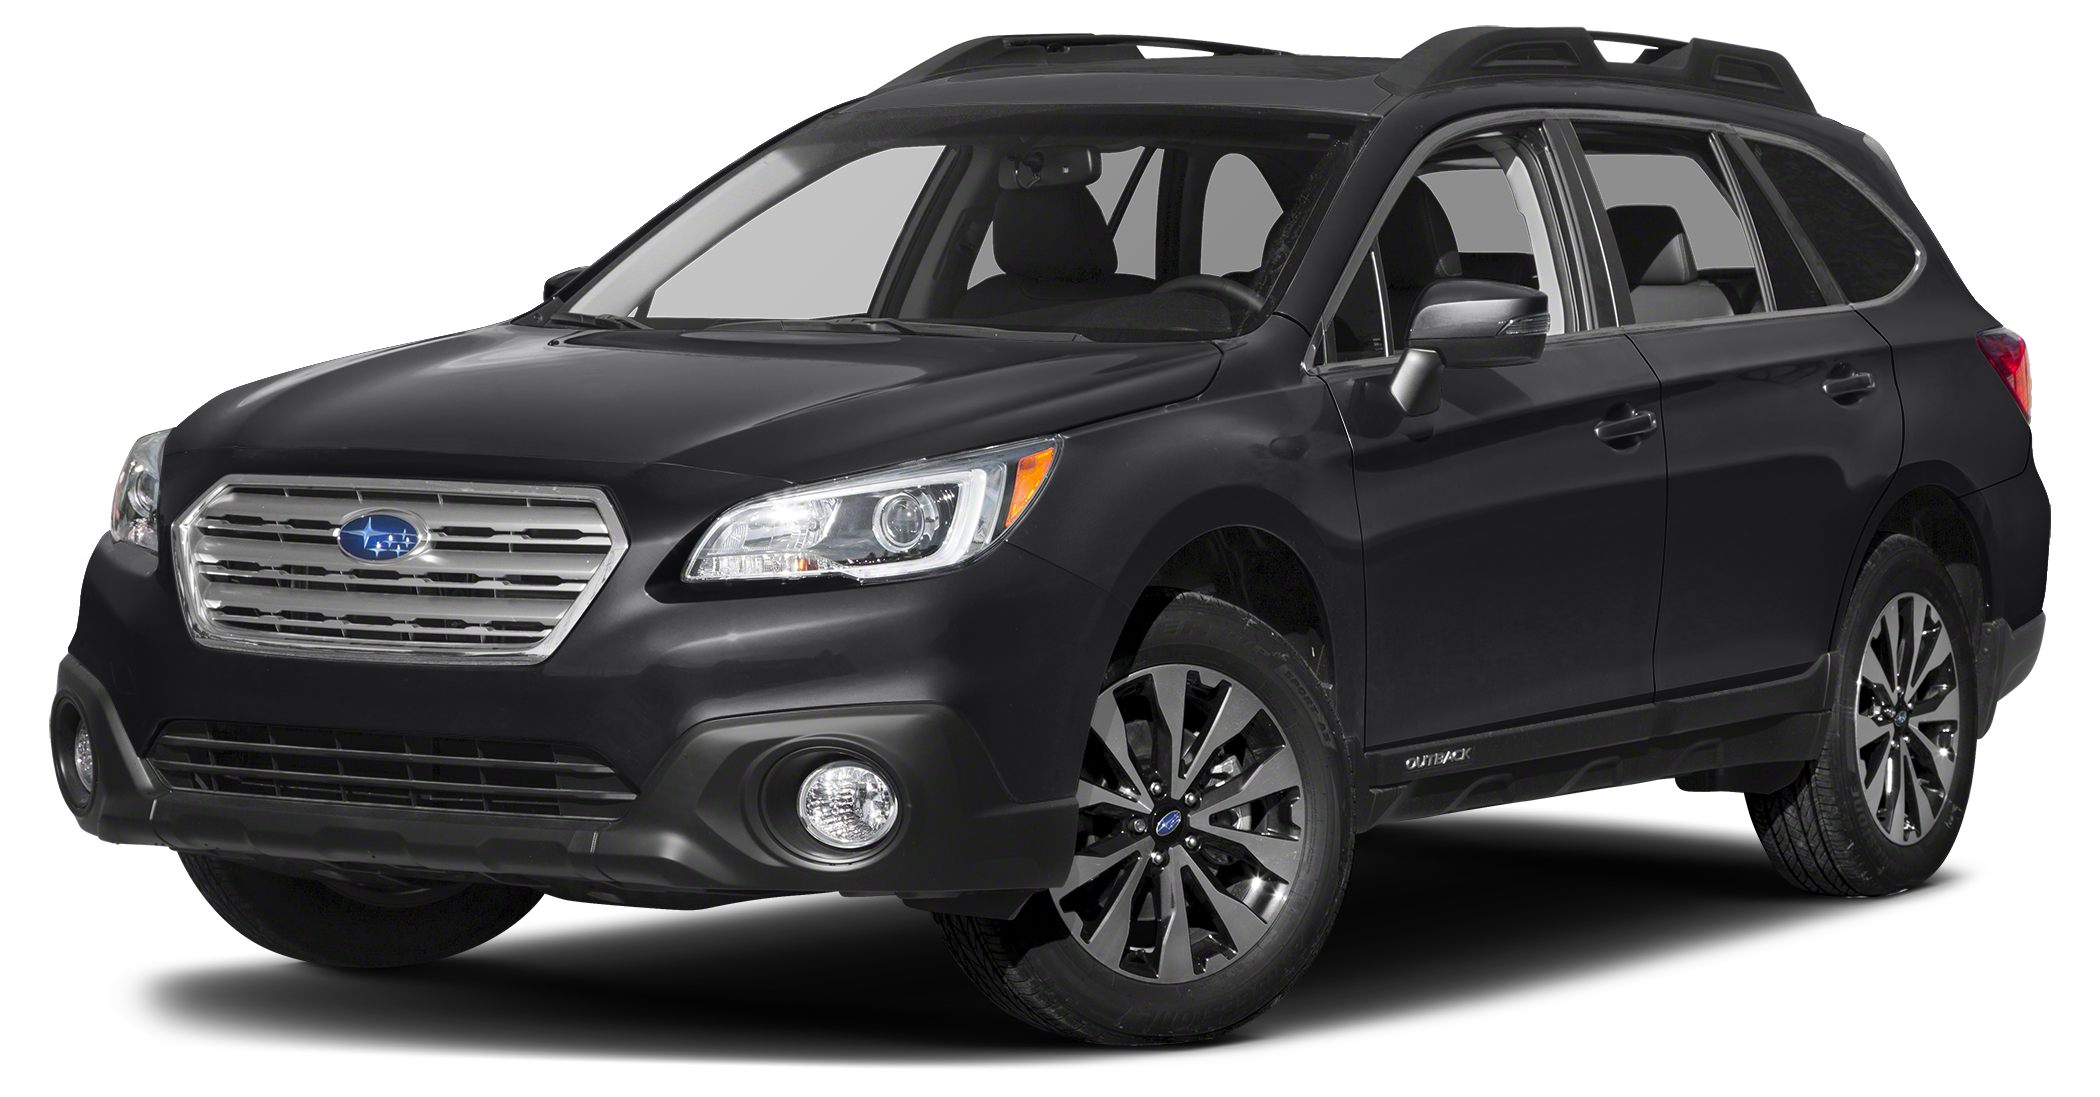 2017 Subaru Outback 25i Limited This 2017 Subaru Outback 4dr 25i Limited features a 25L H4 SOHC